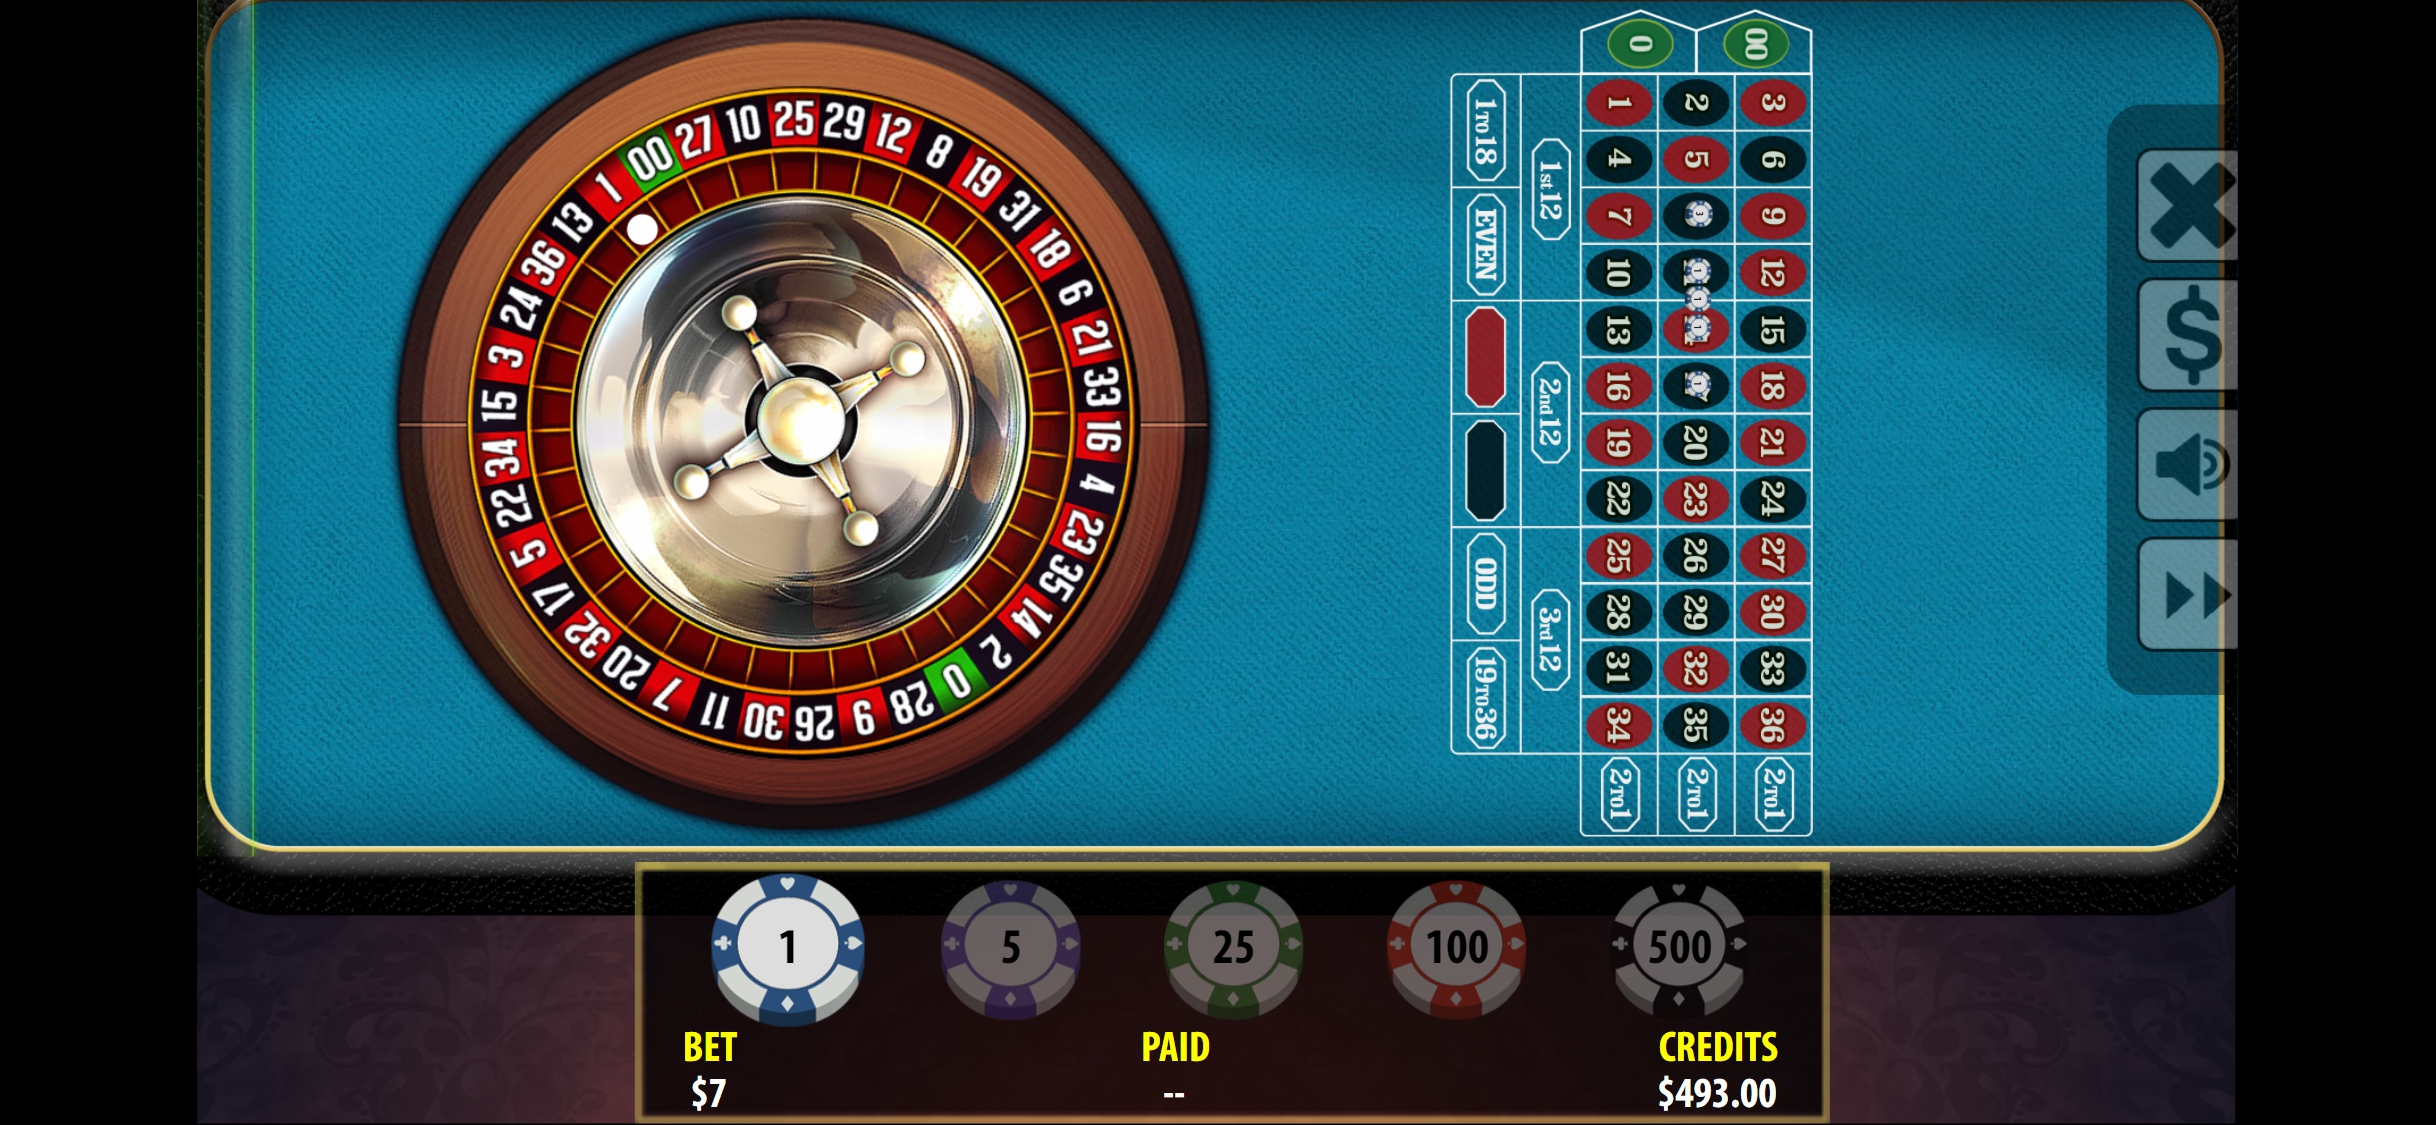 BookMaker Casino Casino Games